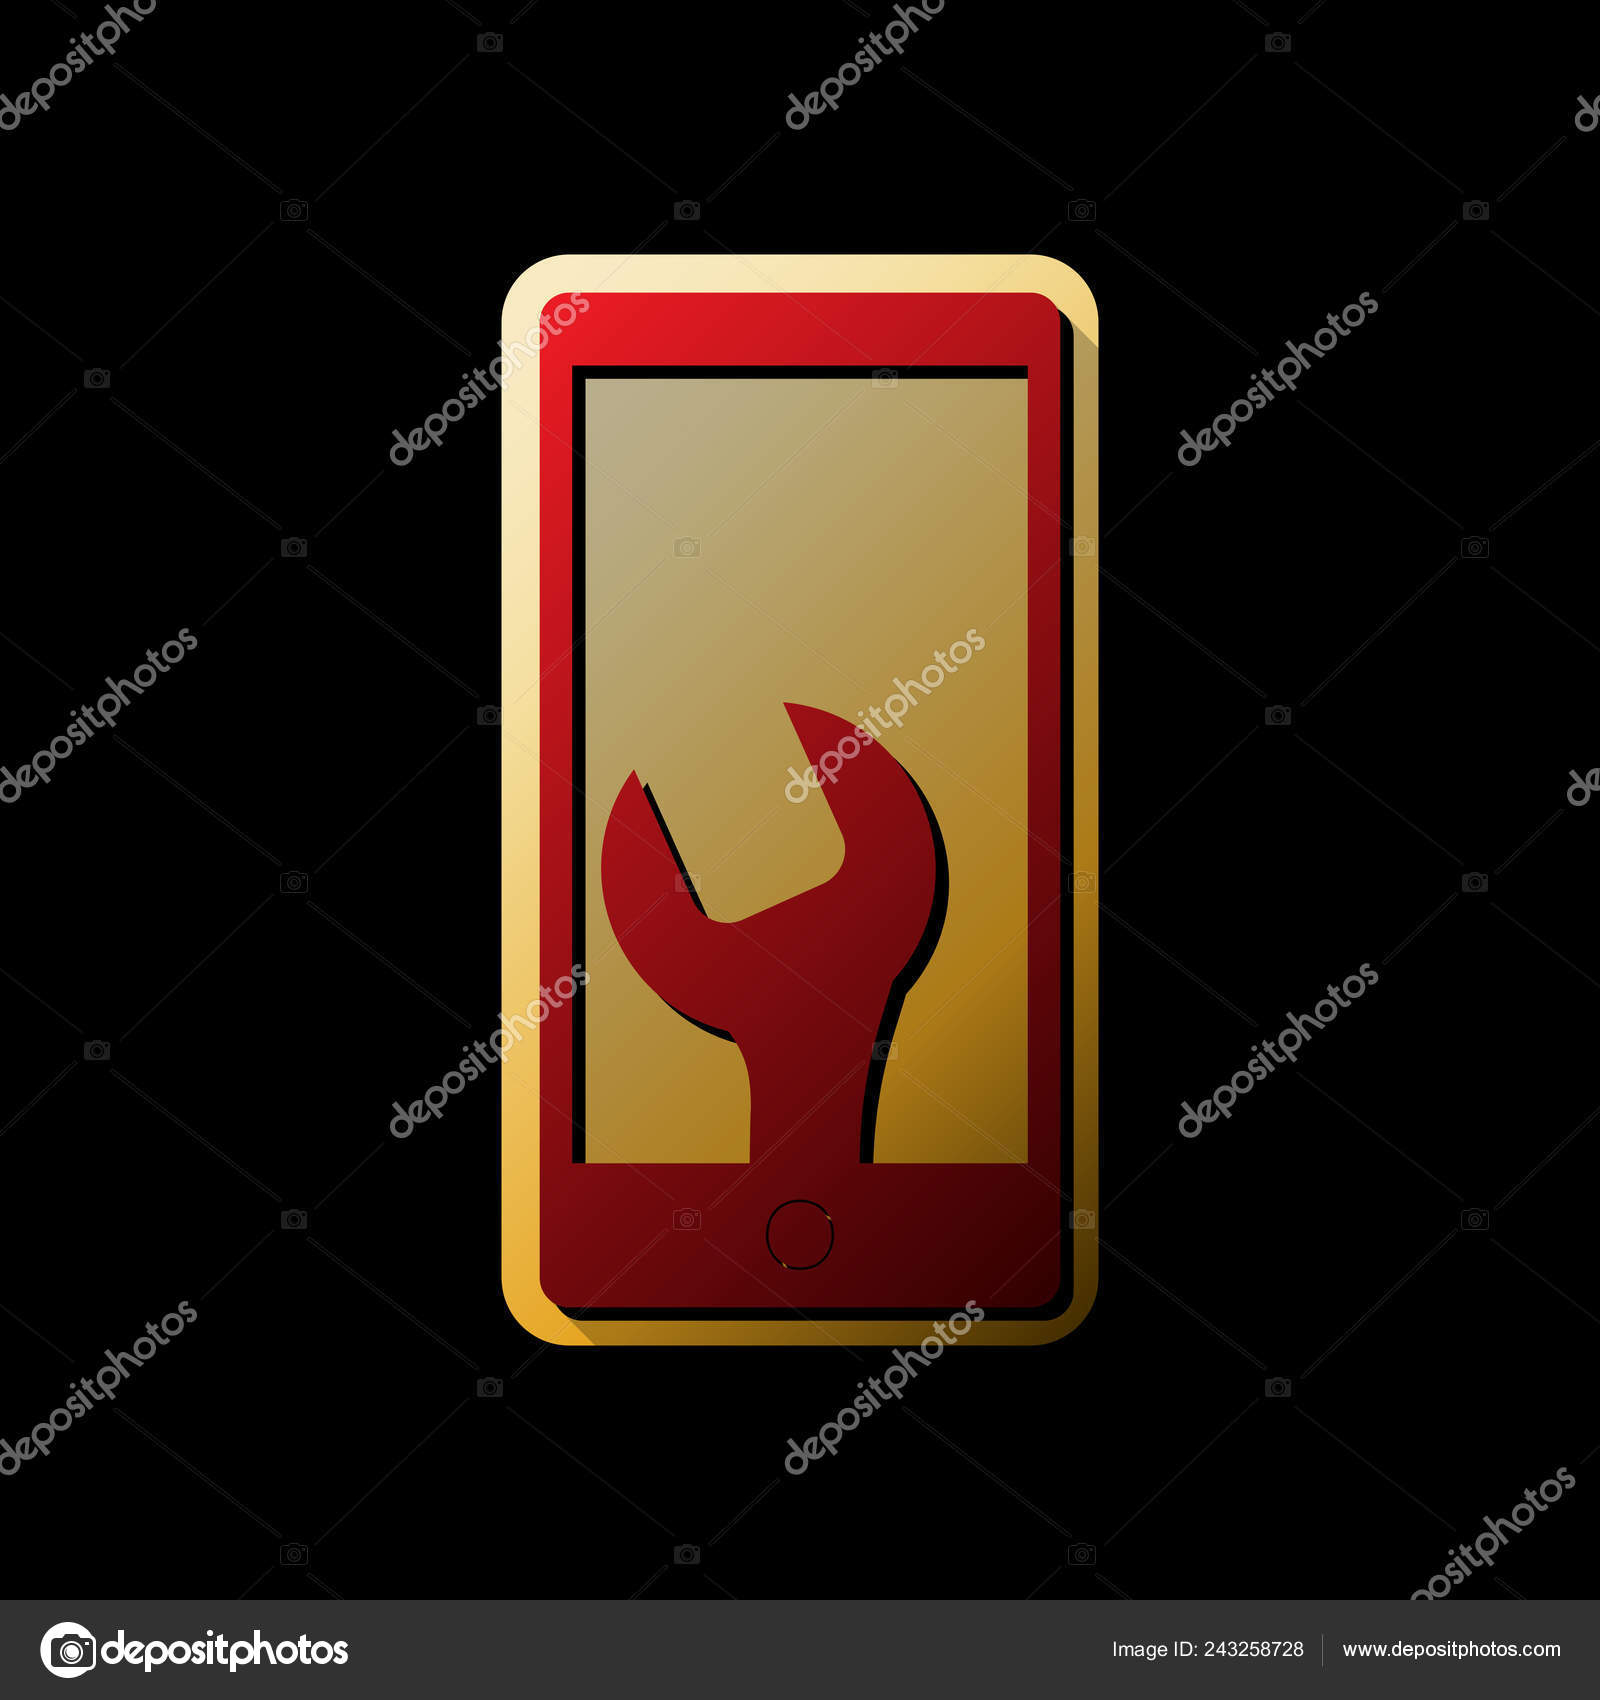 Phone Icon Settings Vector Red Icon Small Black Limitless Shadows Stock Vector C Asmati1702 Gmail Com 243258728